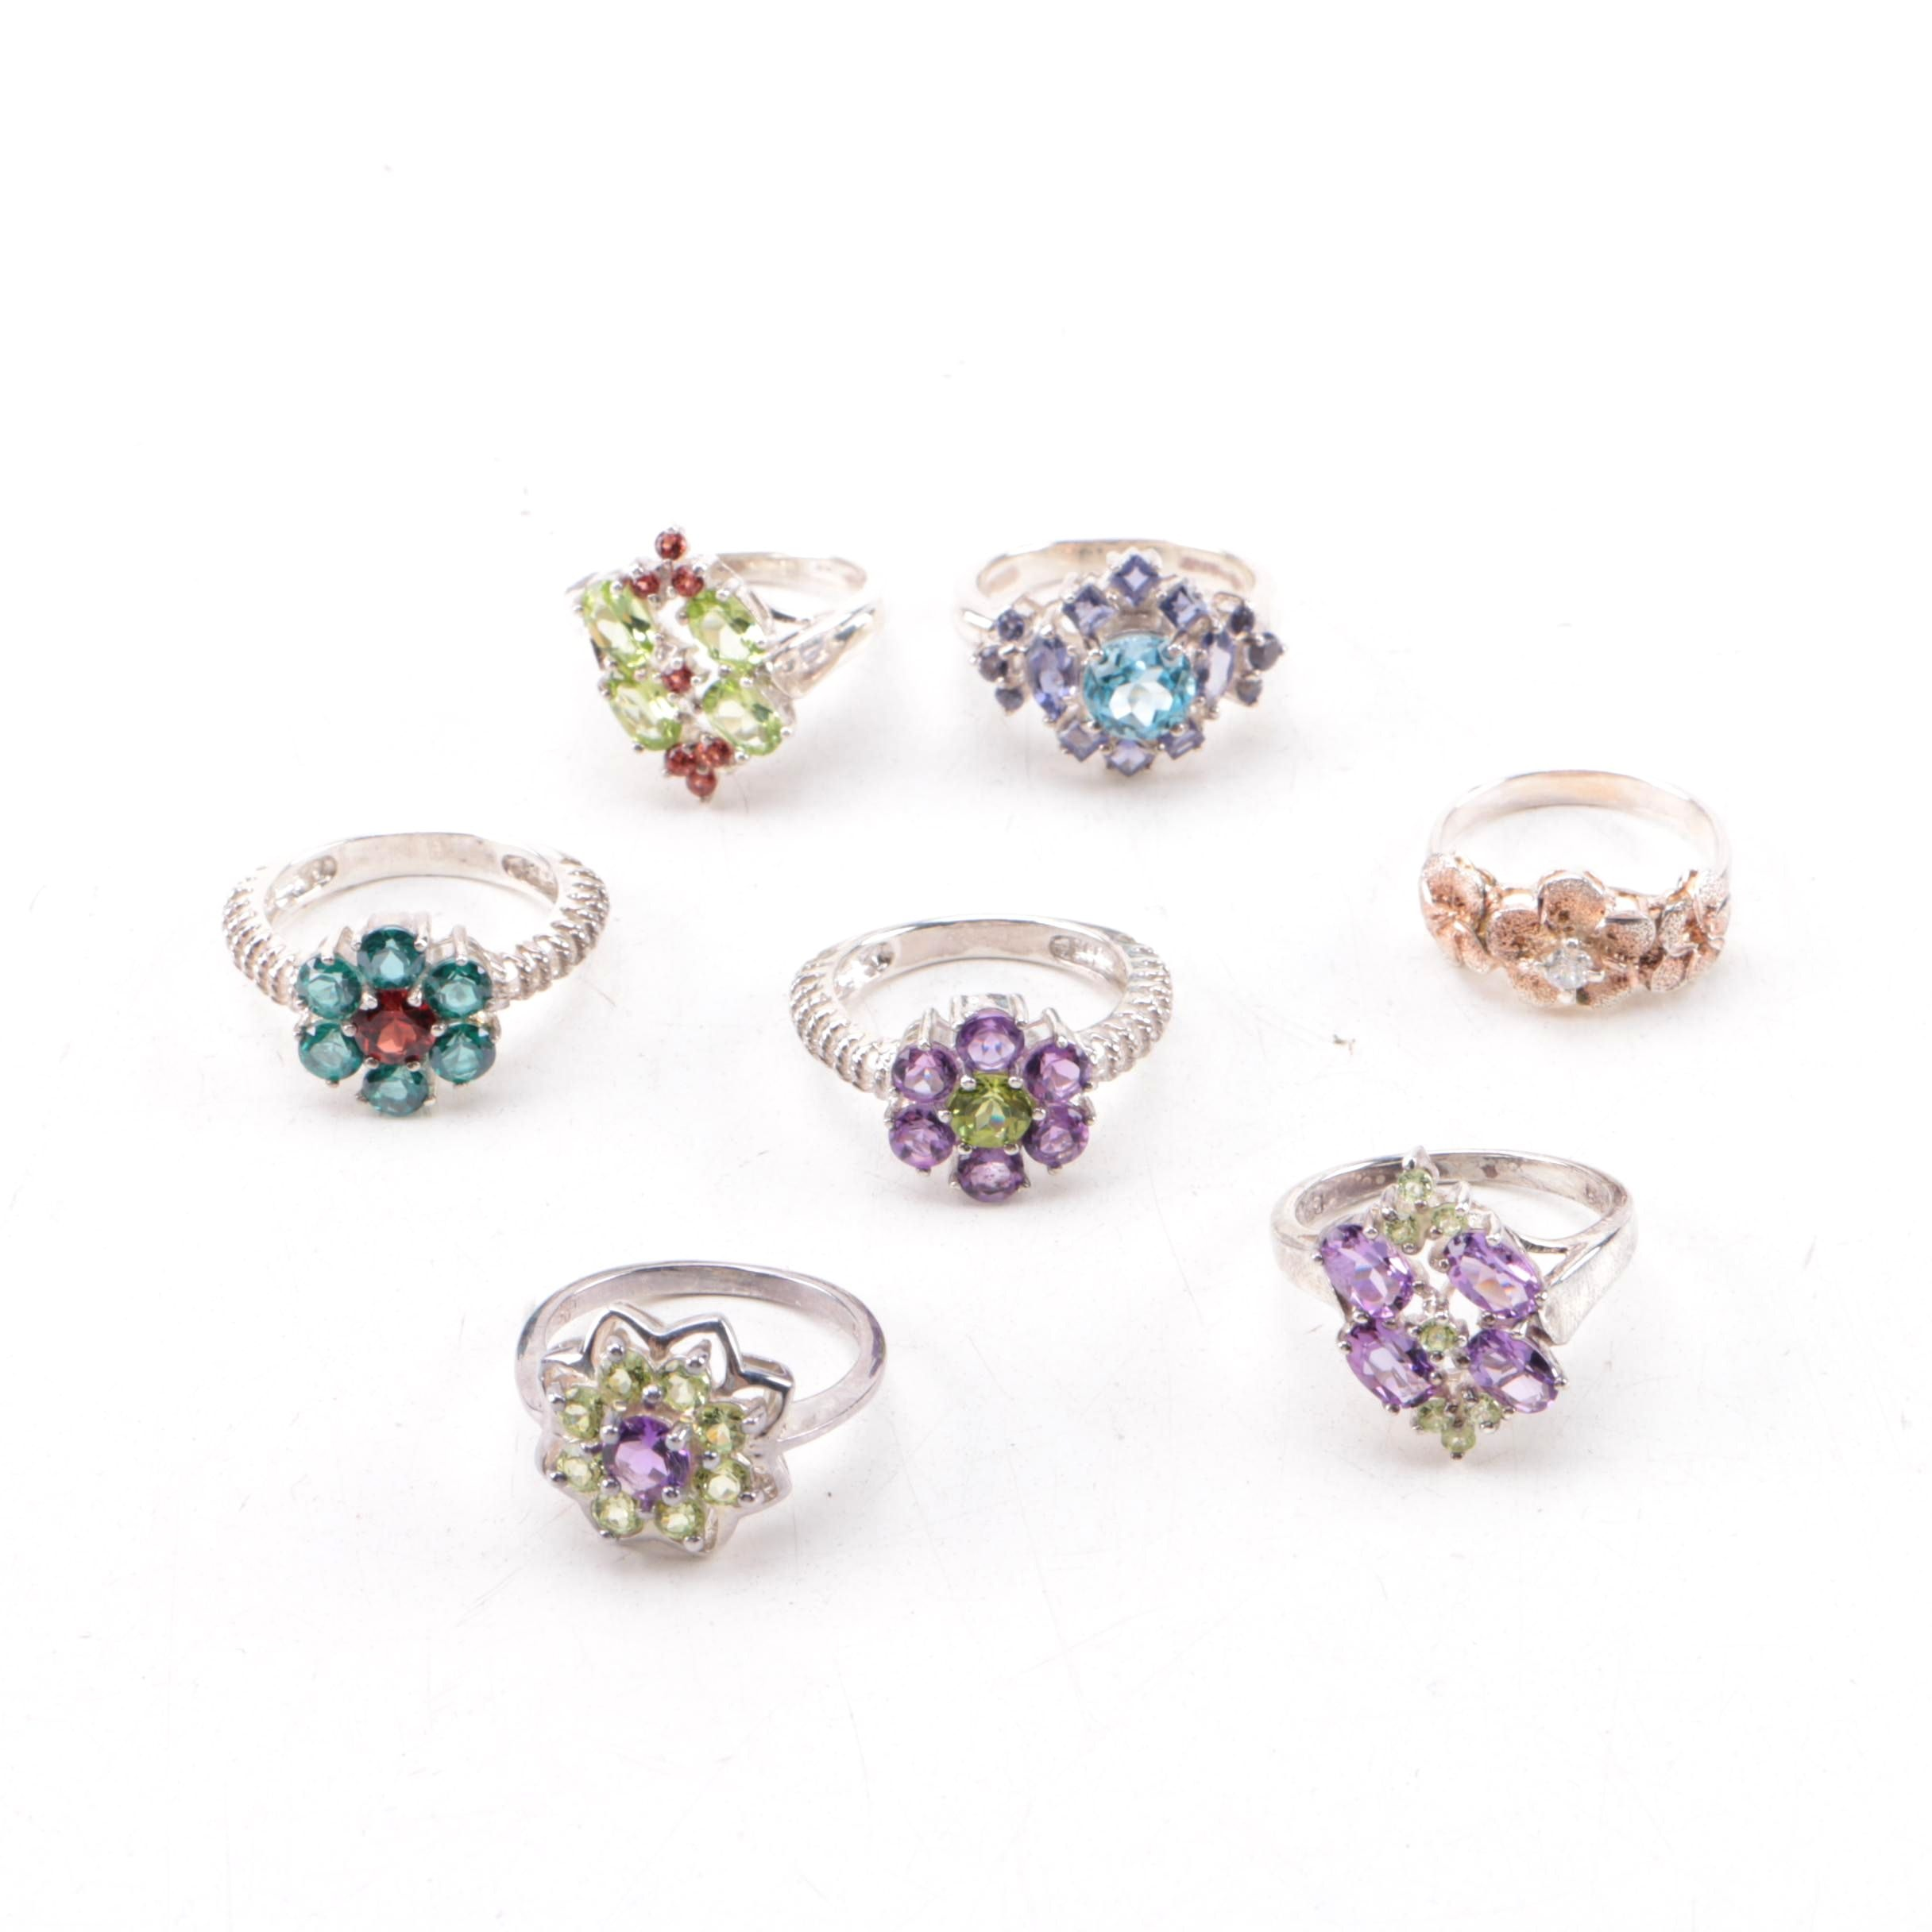 Sterling Silver Ring Selection Including Amethyst, Tanzanite and Peridot